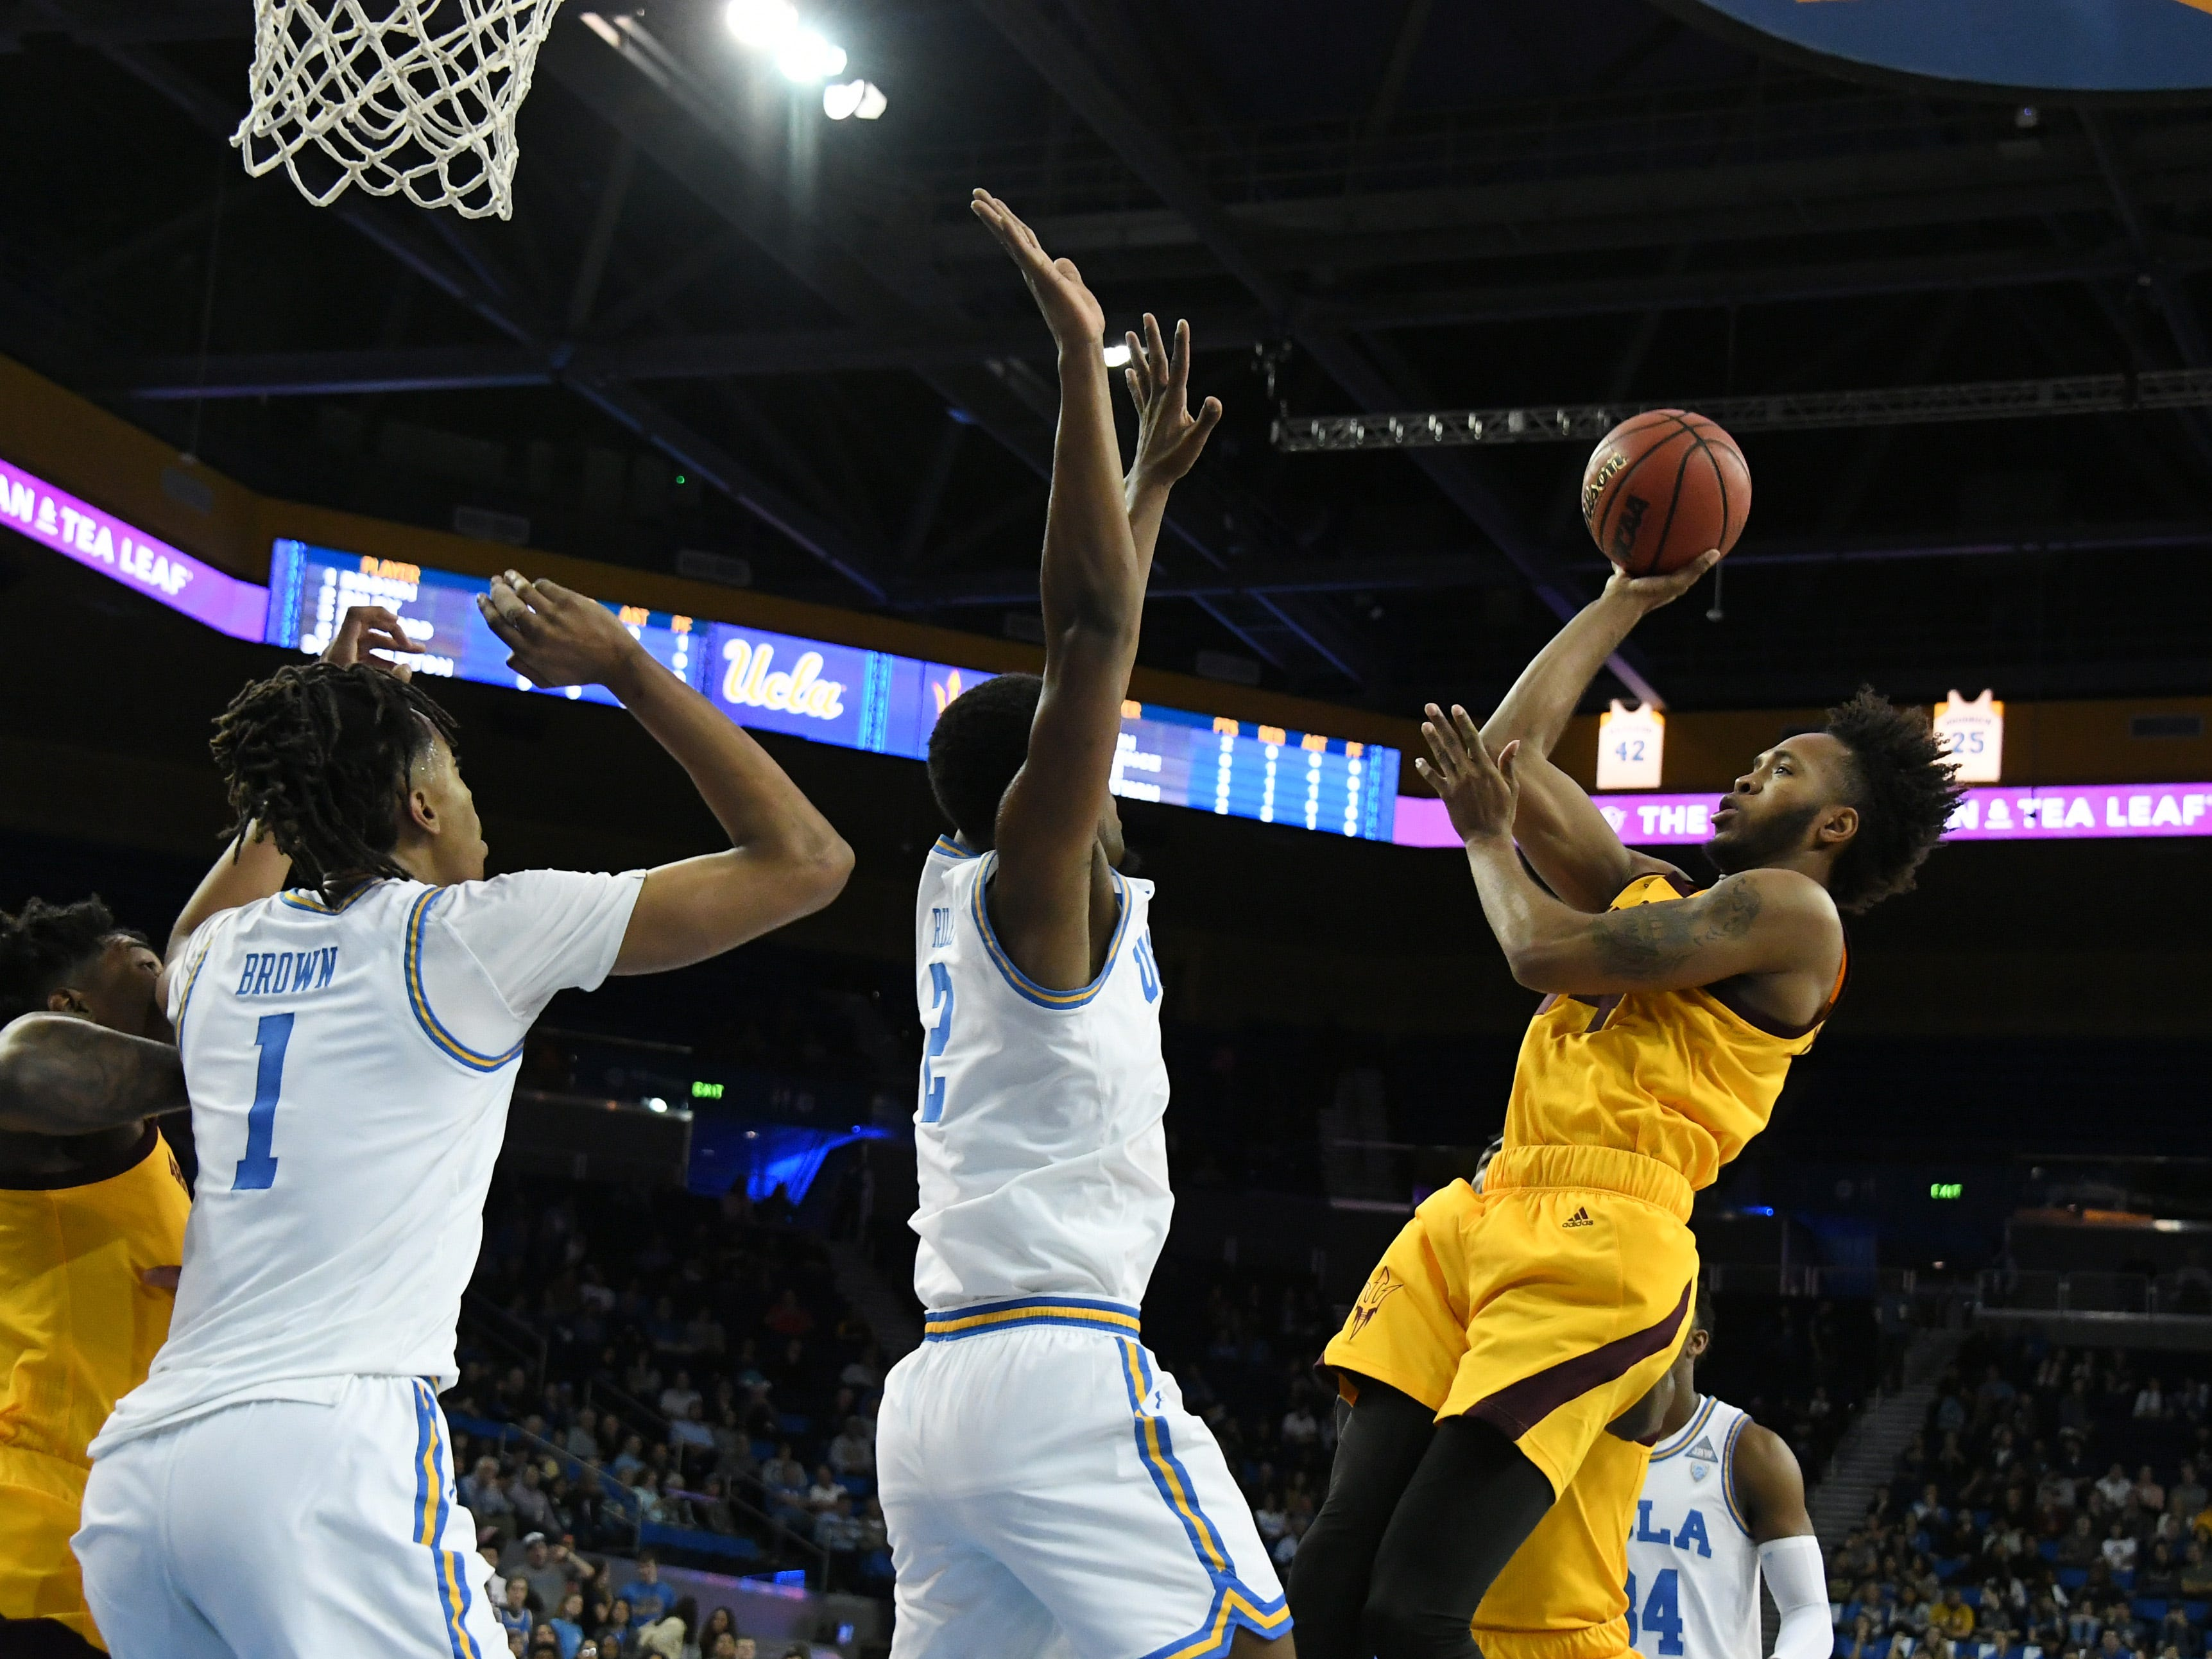 Jan 24, 2019; Los Angeles, CA, USA; Arizona State Sun Devils forward Kimani Lawrence (14) shoots over UCLA Bruins center Moses Brown (1) and forward Cody Riley (2) during the first half at Pauley Pavilion. Mandatory Credit: Richard Mackson-USA TODAY Sports